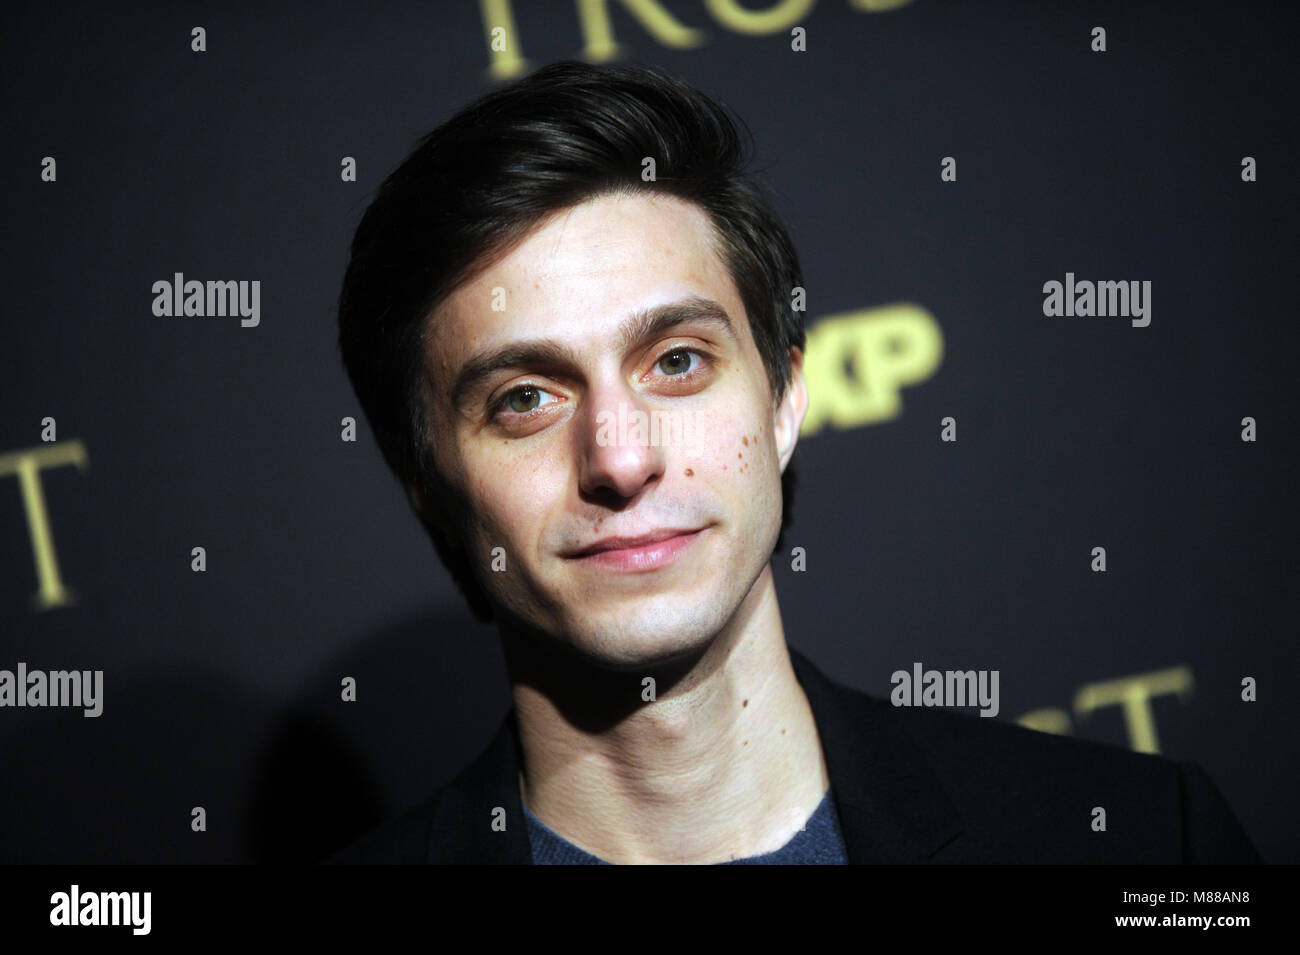 NEW YORK, NY - MARCH 14 :Gideon Glick attends the FX Networks' 'Trust' New York Screening at Florence - Stock Image